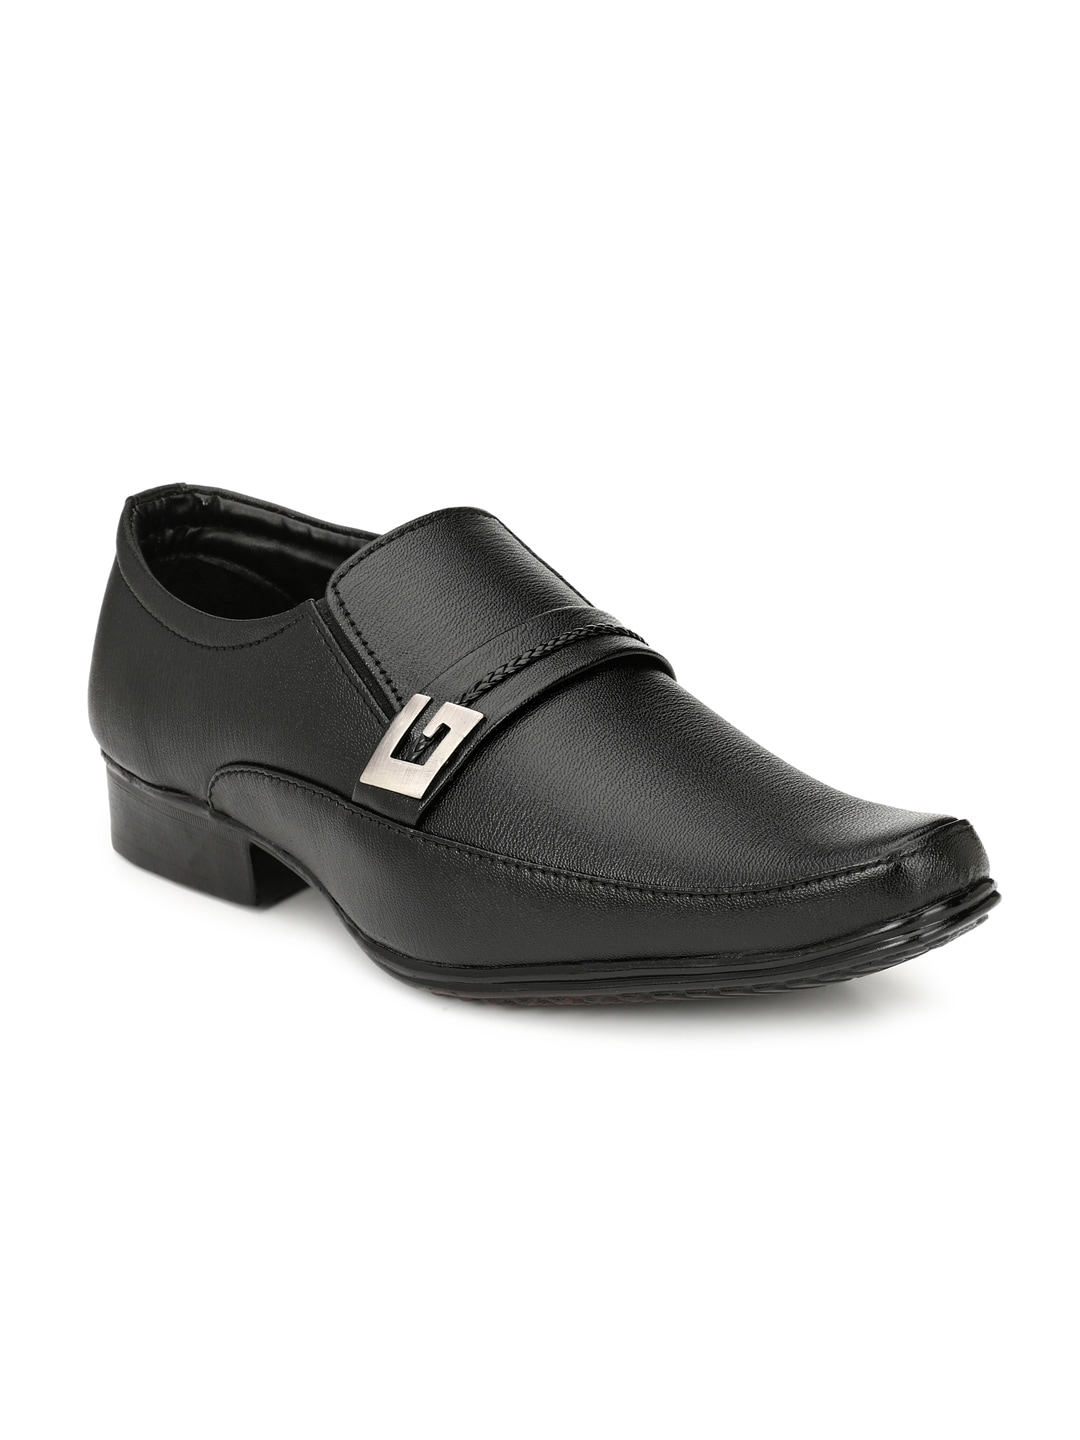 Sir Corbett Men Black Formal Formal Shoes image